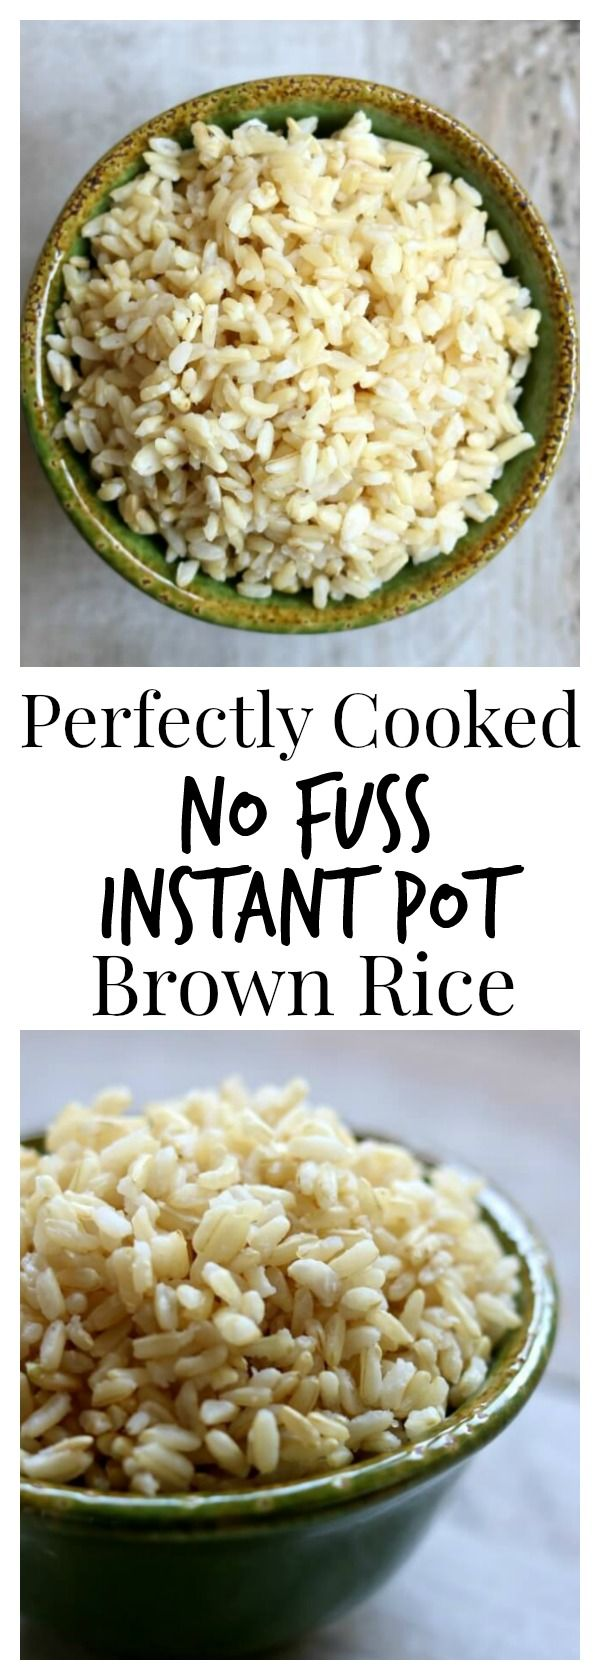 17 Best Ideas About Brown Rice Cooker On Pinterest  Rice Cooker Recipes,  Aroma Rice Cooker And Healthy Brown Rice Recipes